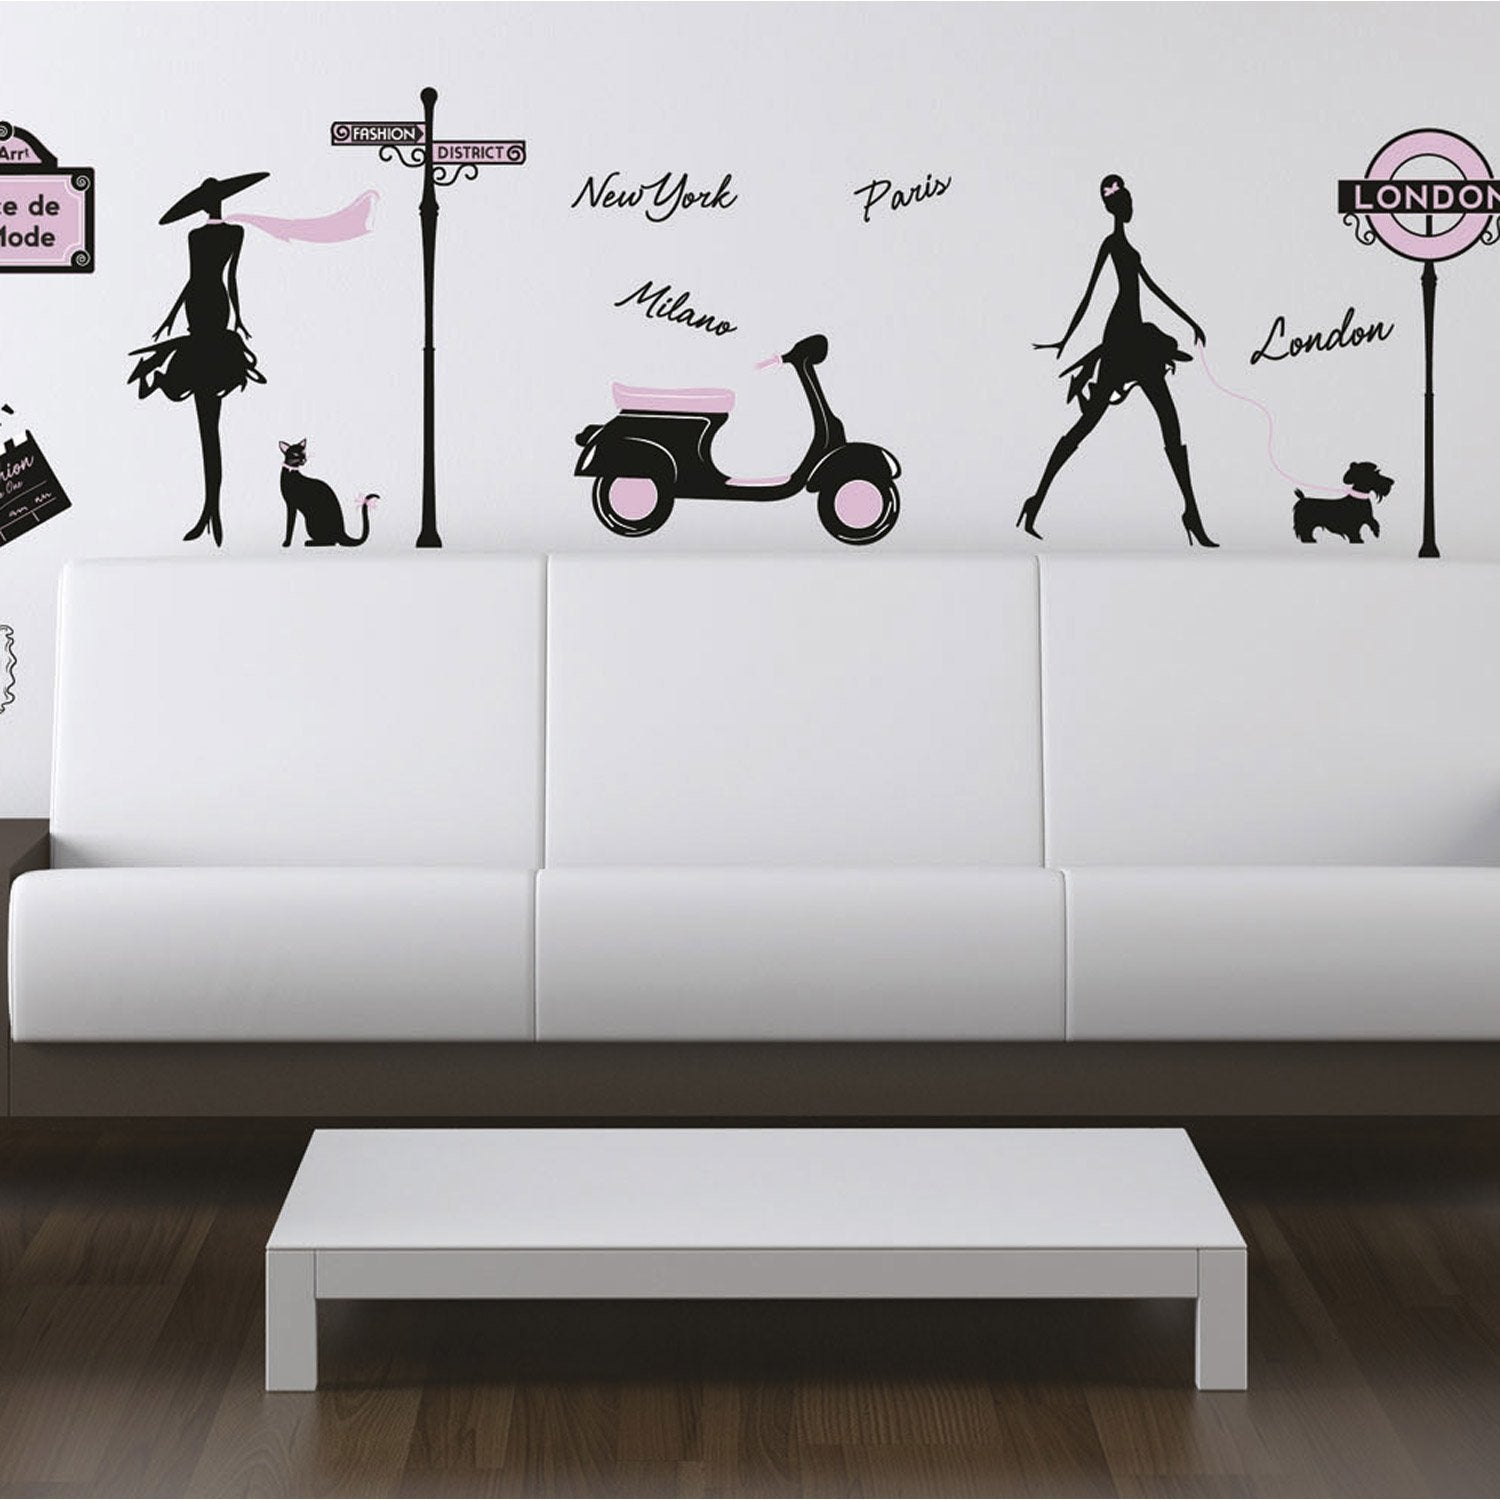 sticker world fashion 50 cm x 70 cm leroy merlin. Black Bedroom Furniture Sets. Home Design Ideas